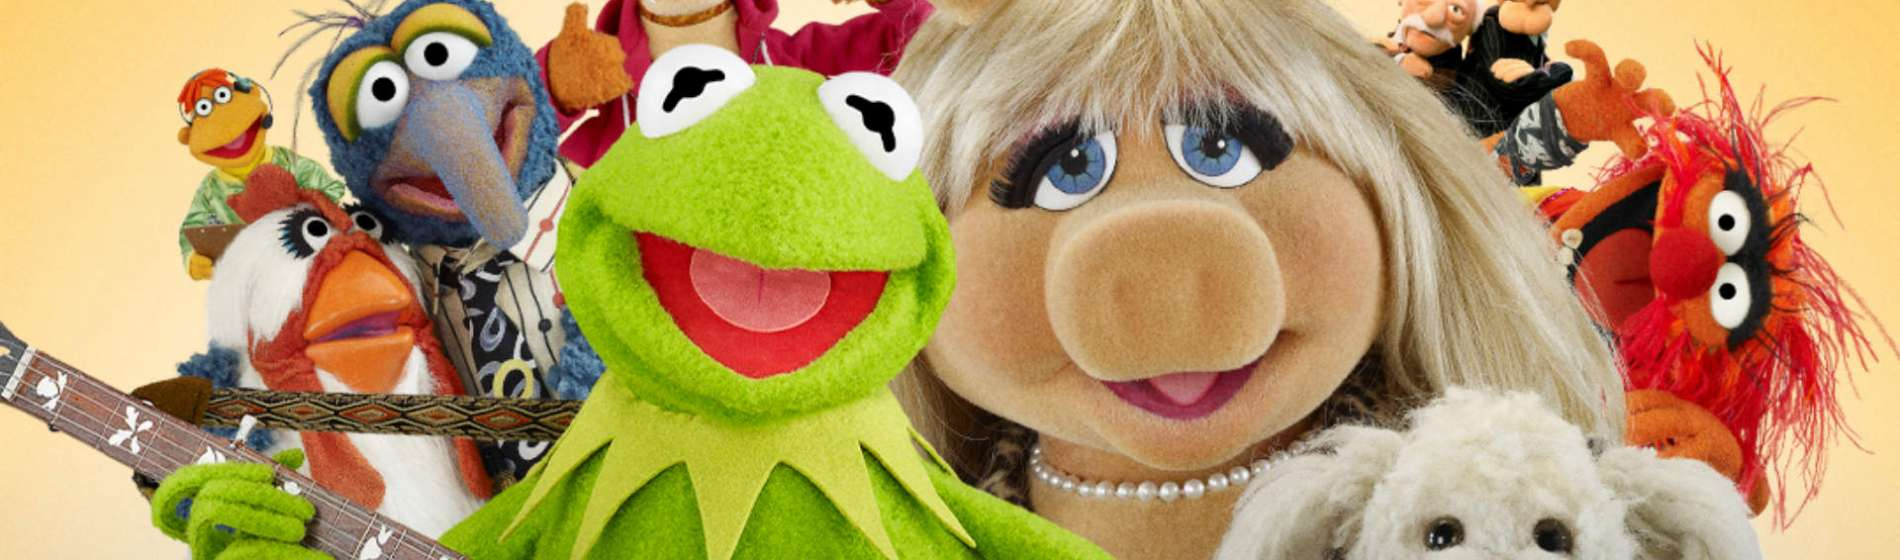 muppets-now-cast